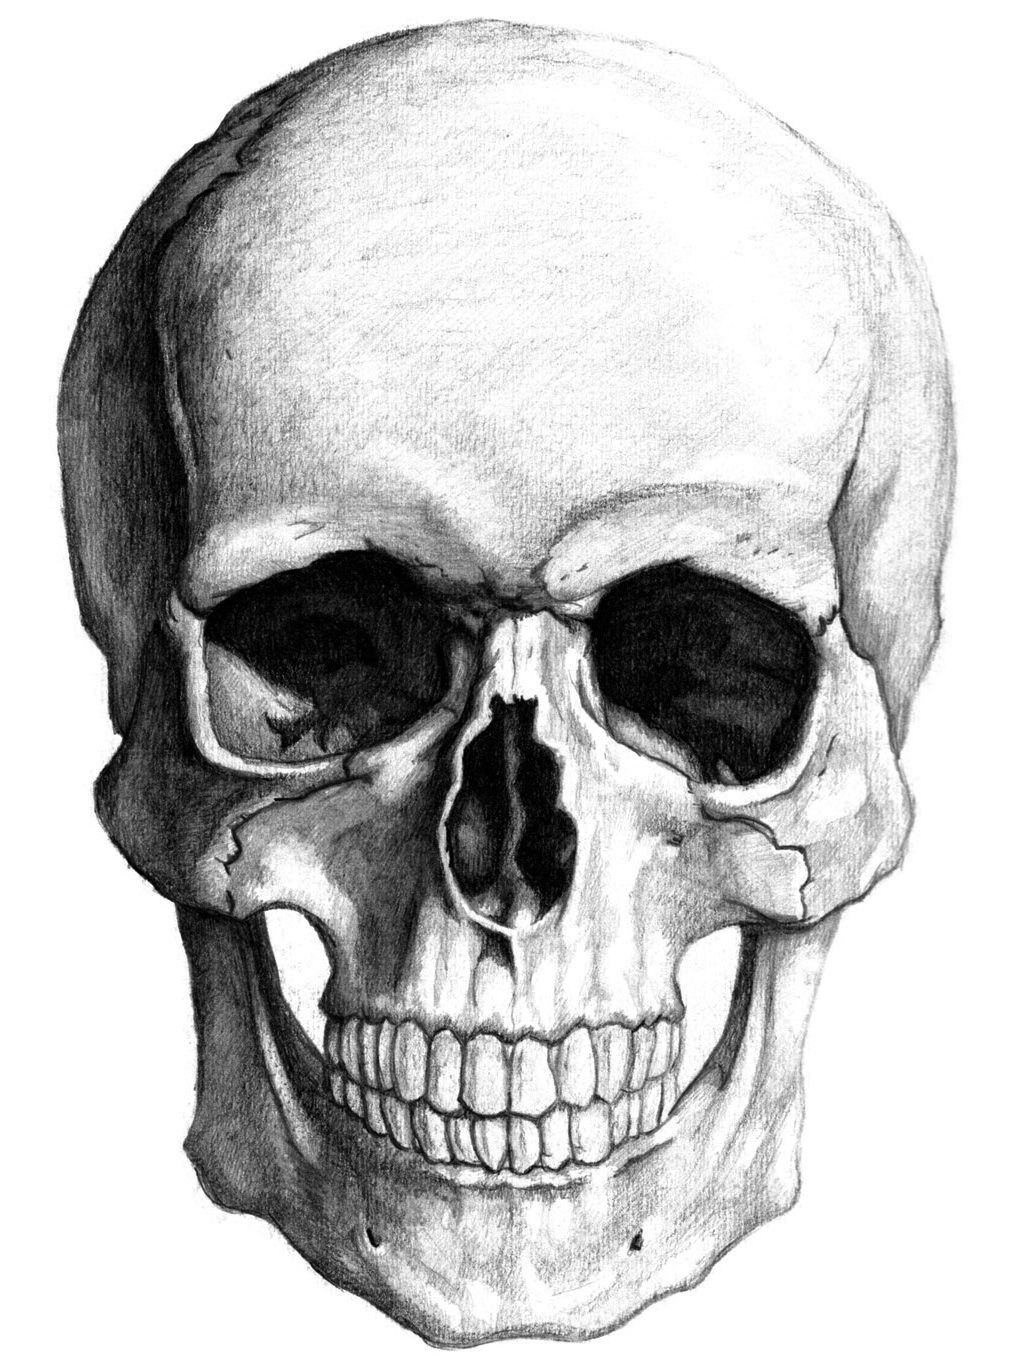 Pin by Joe Cwik on Osteology past and present | Realistic ...